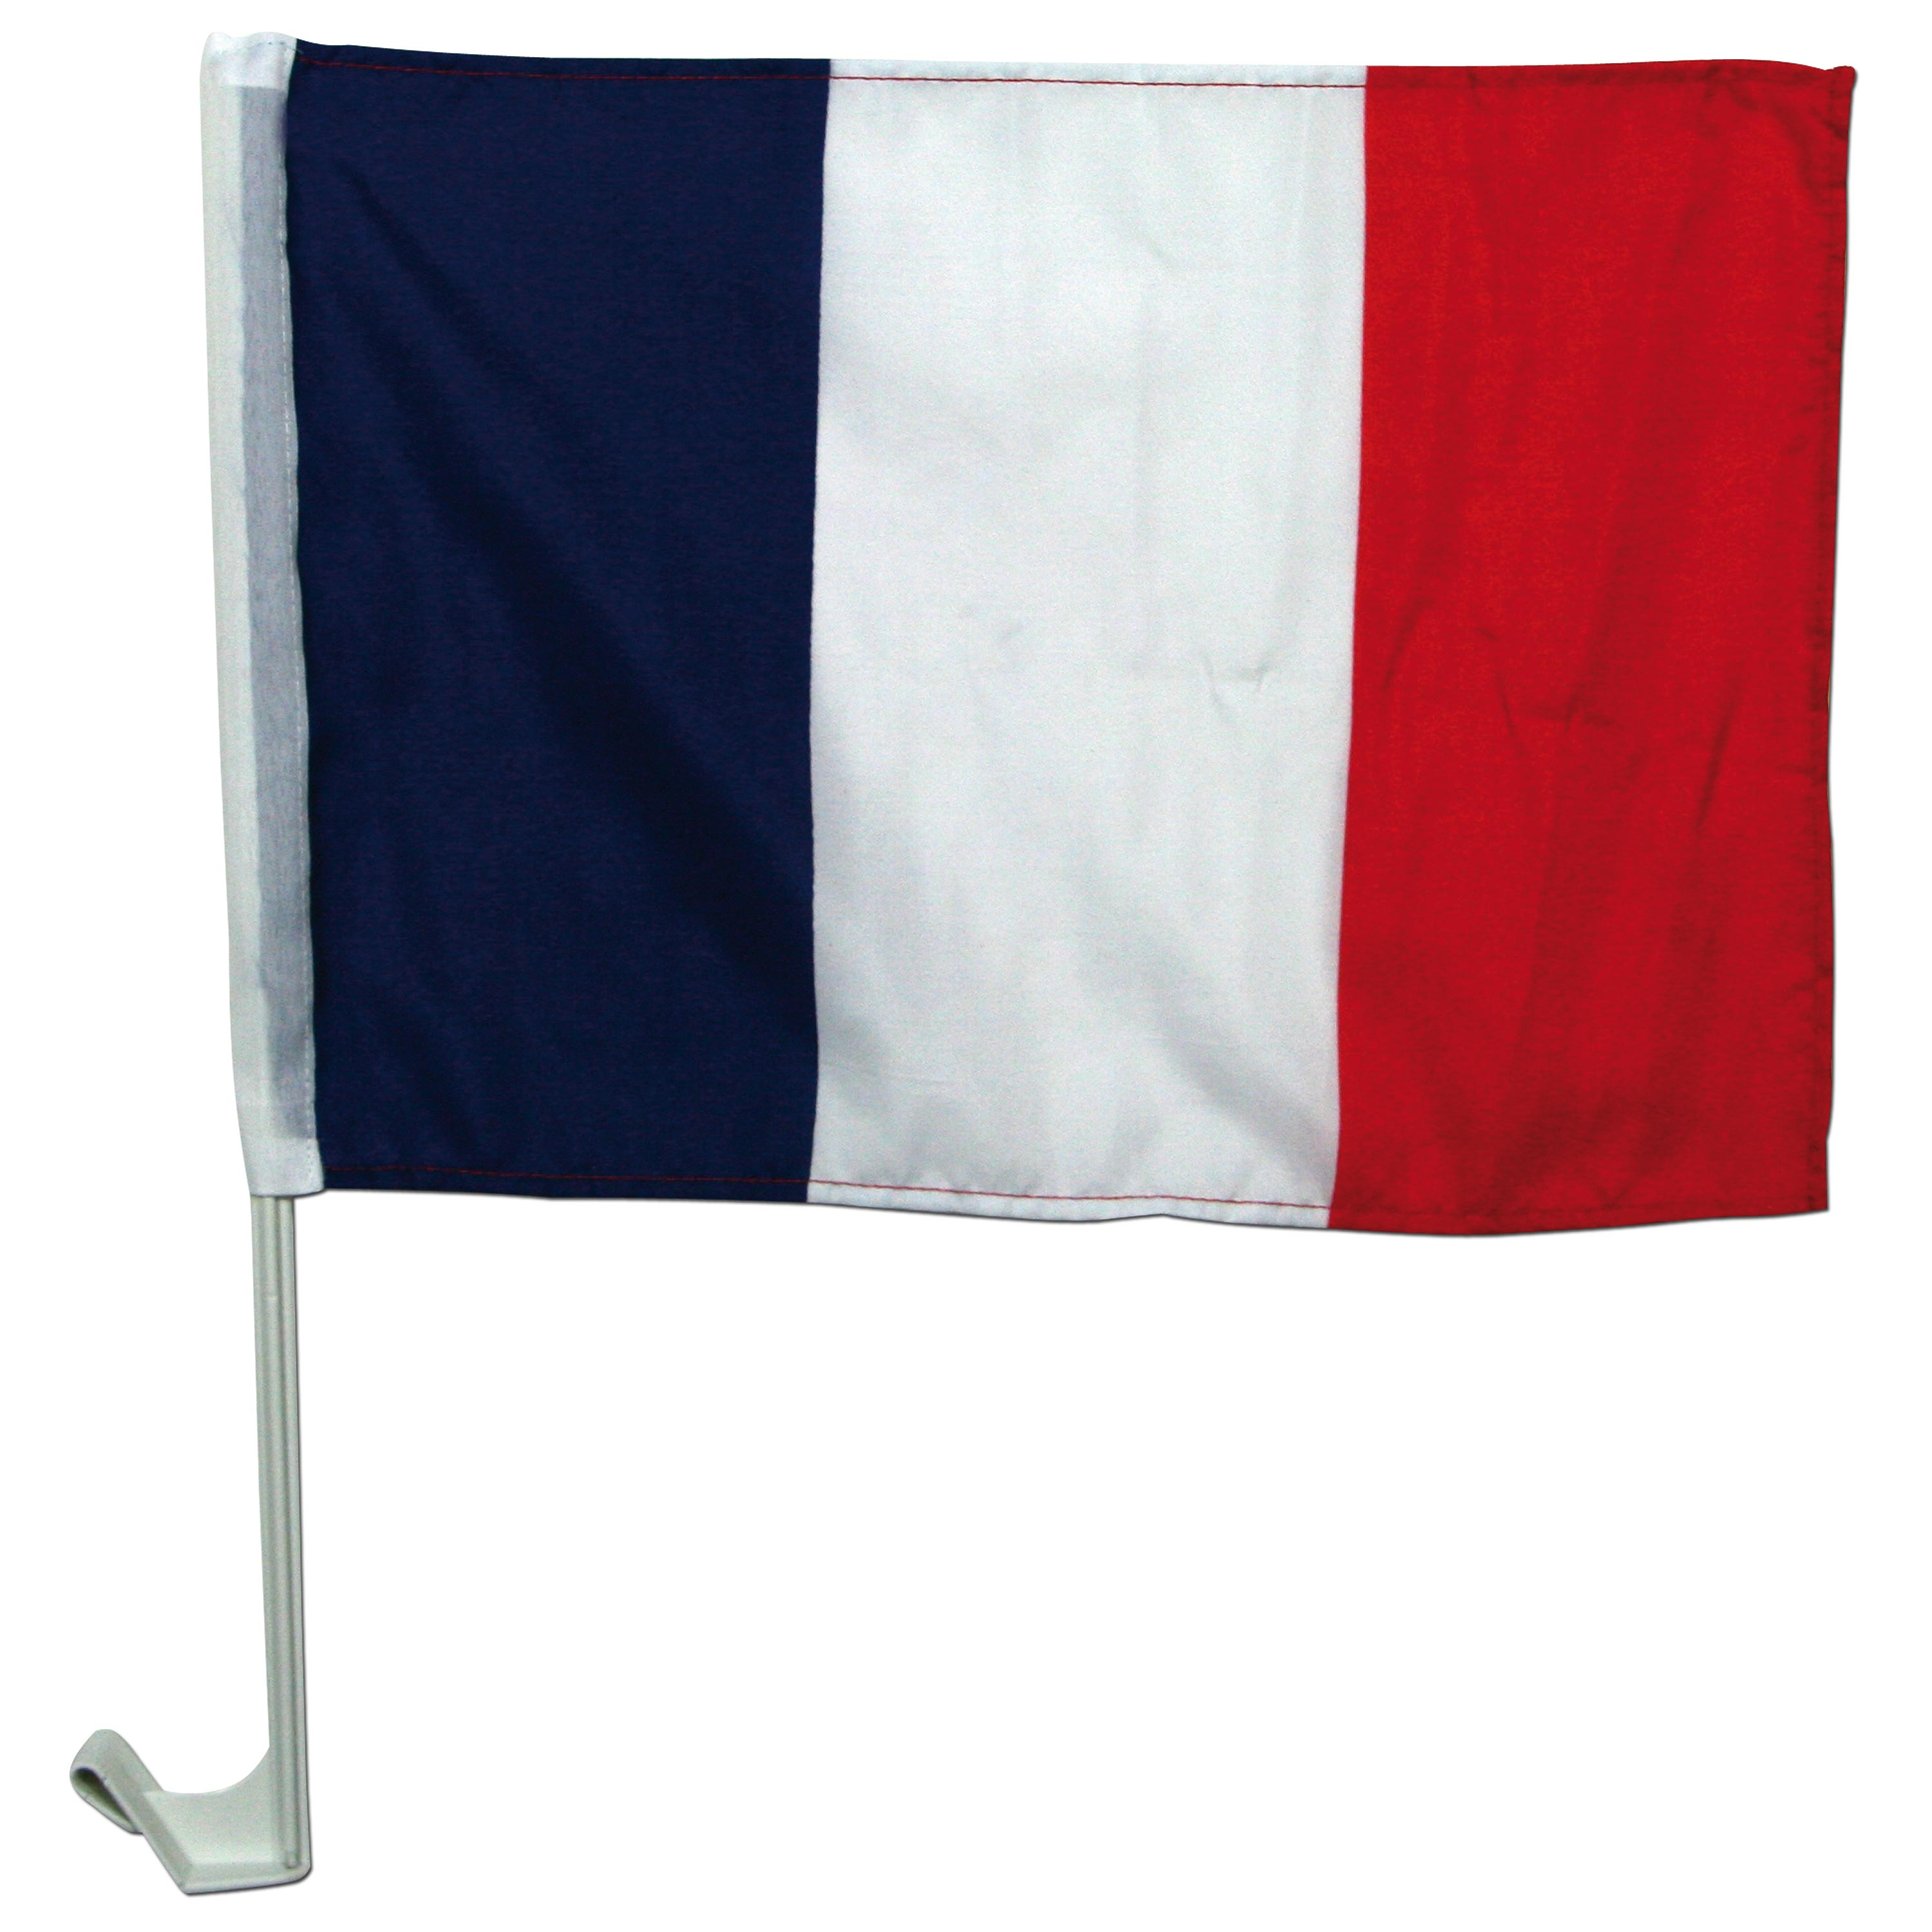 Fan-Kit France with flag and car flagstand